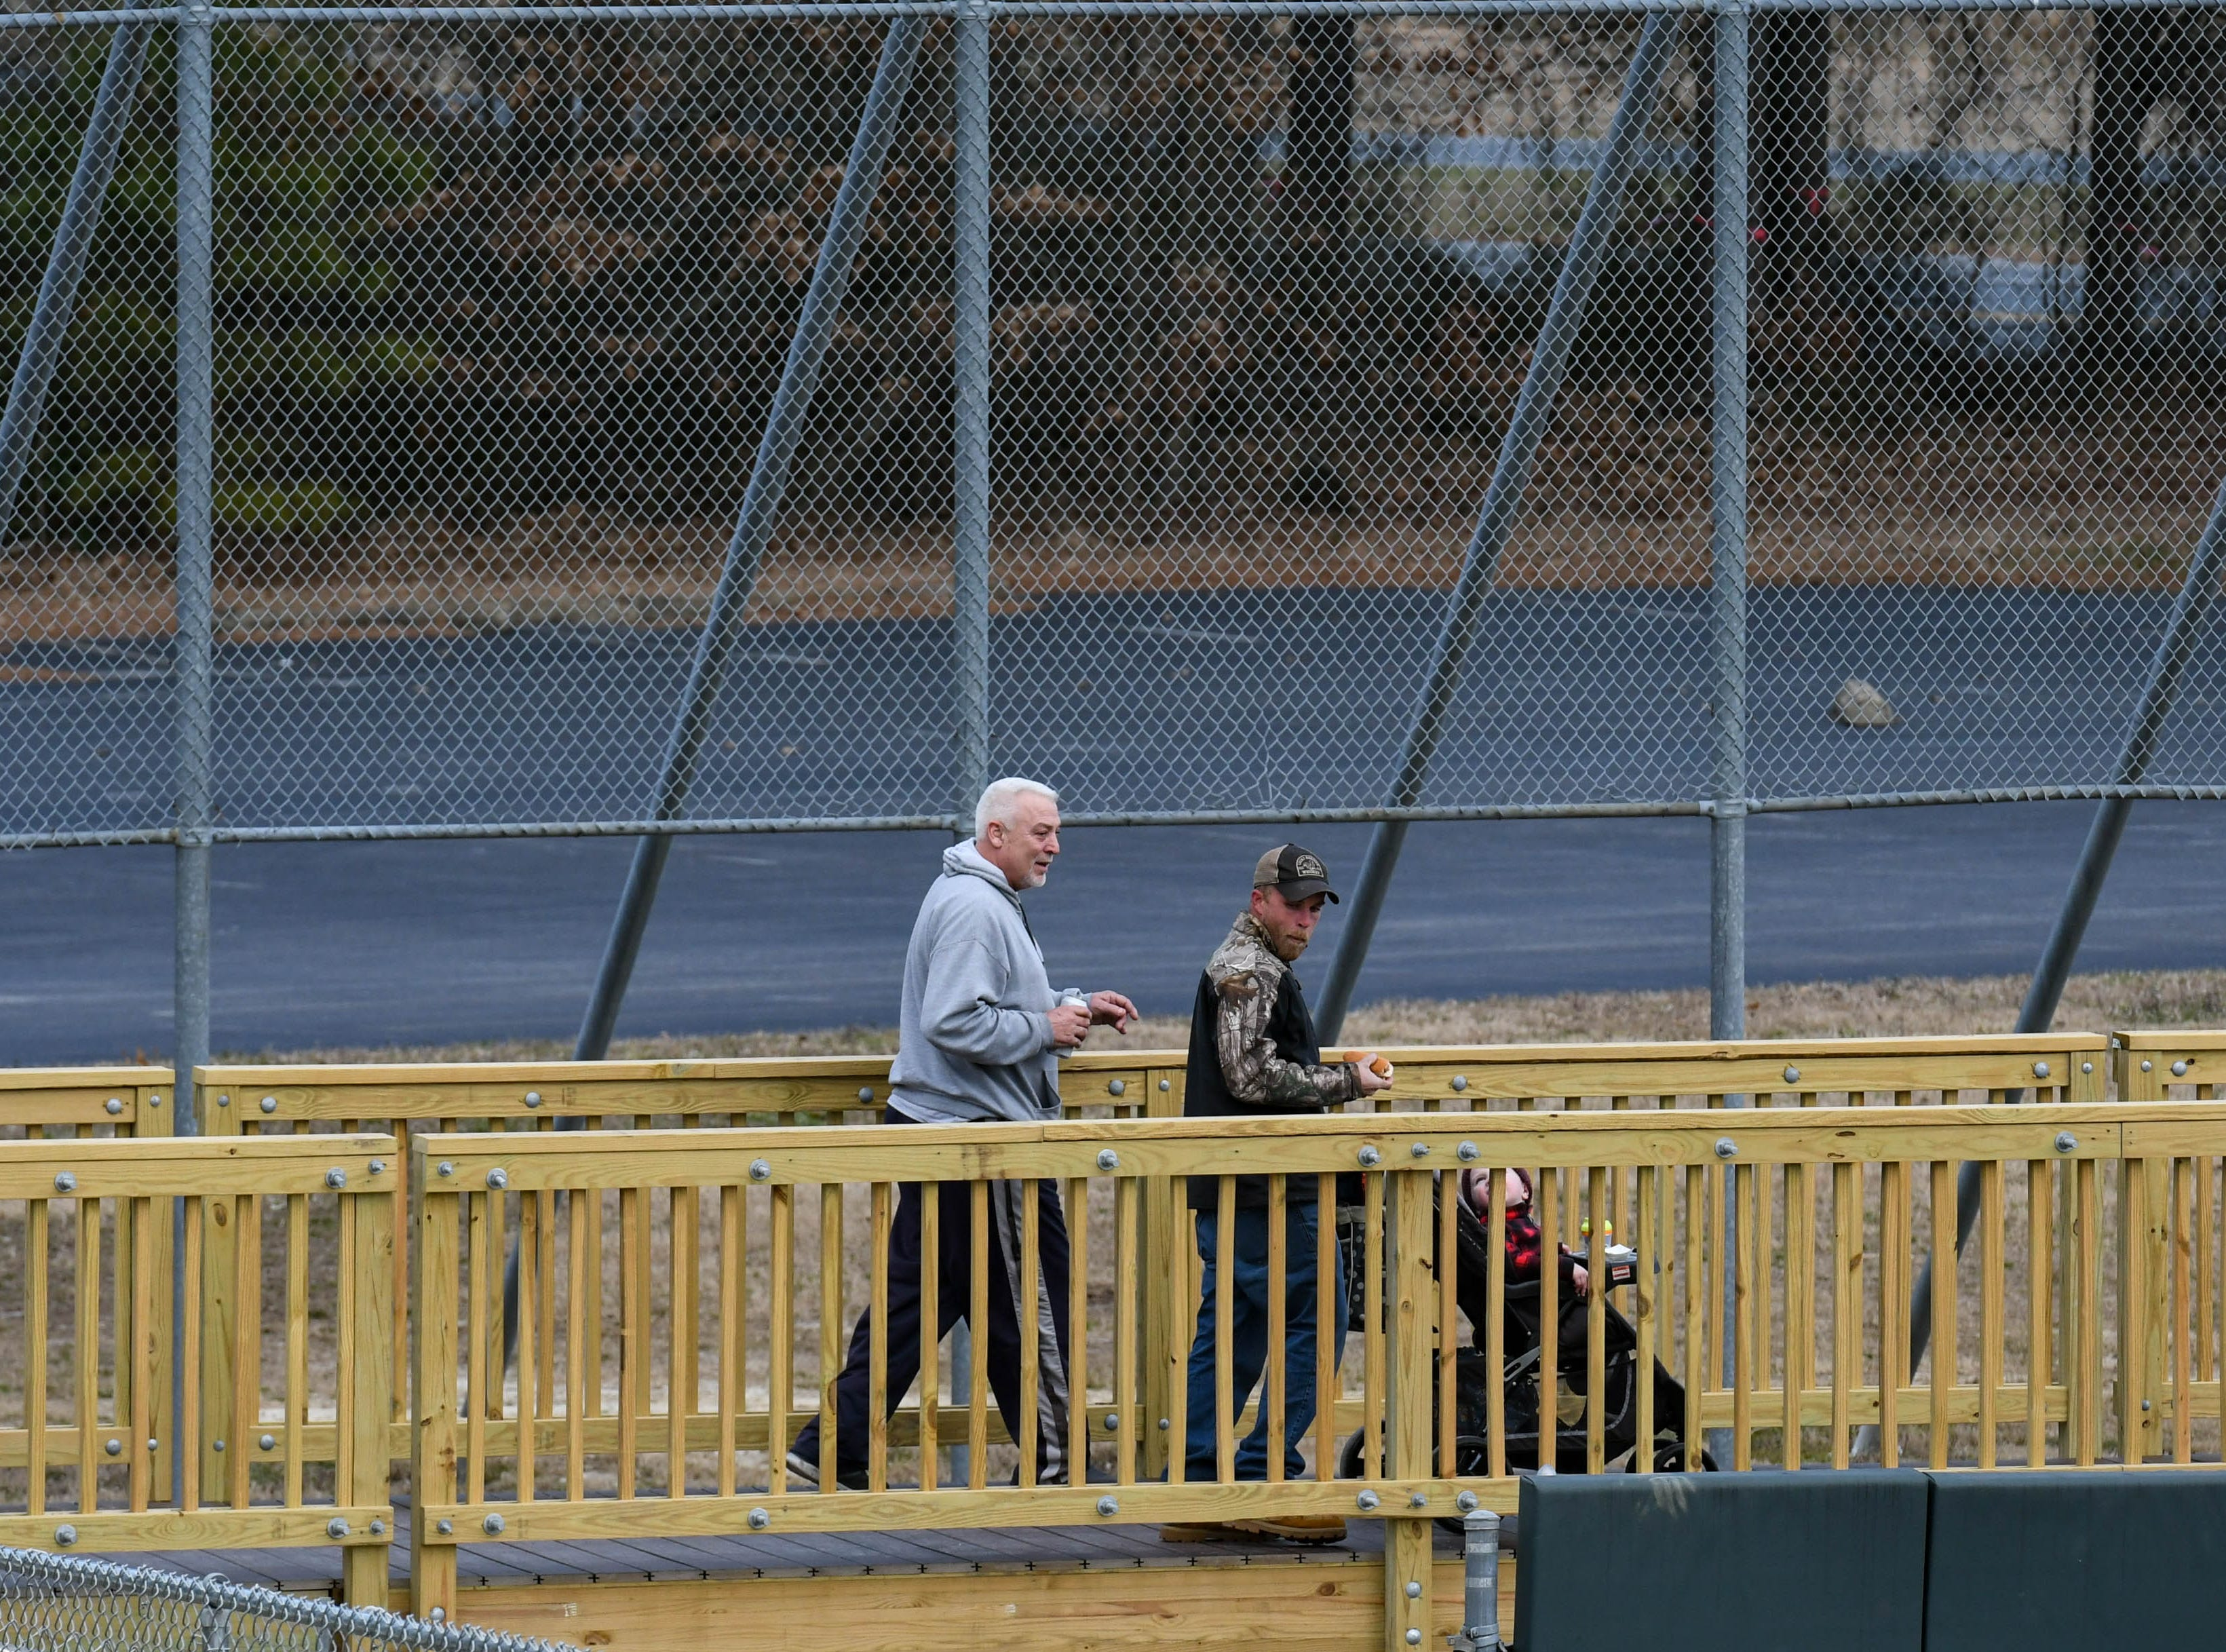 Attendees walk the new wrap around boardwalk deck at Perdue Stadium at an open house event on Wednesday, Mach 13, 2019.